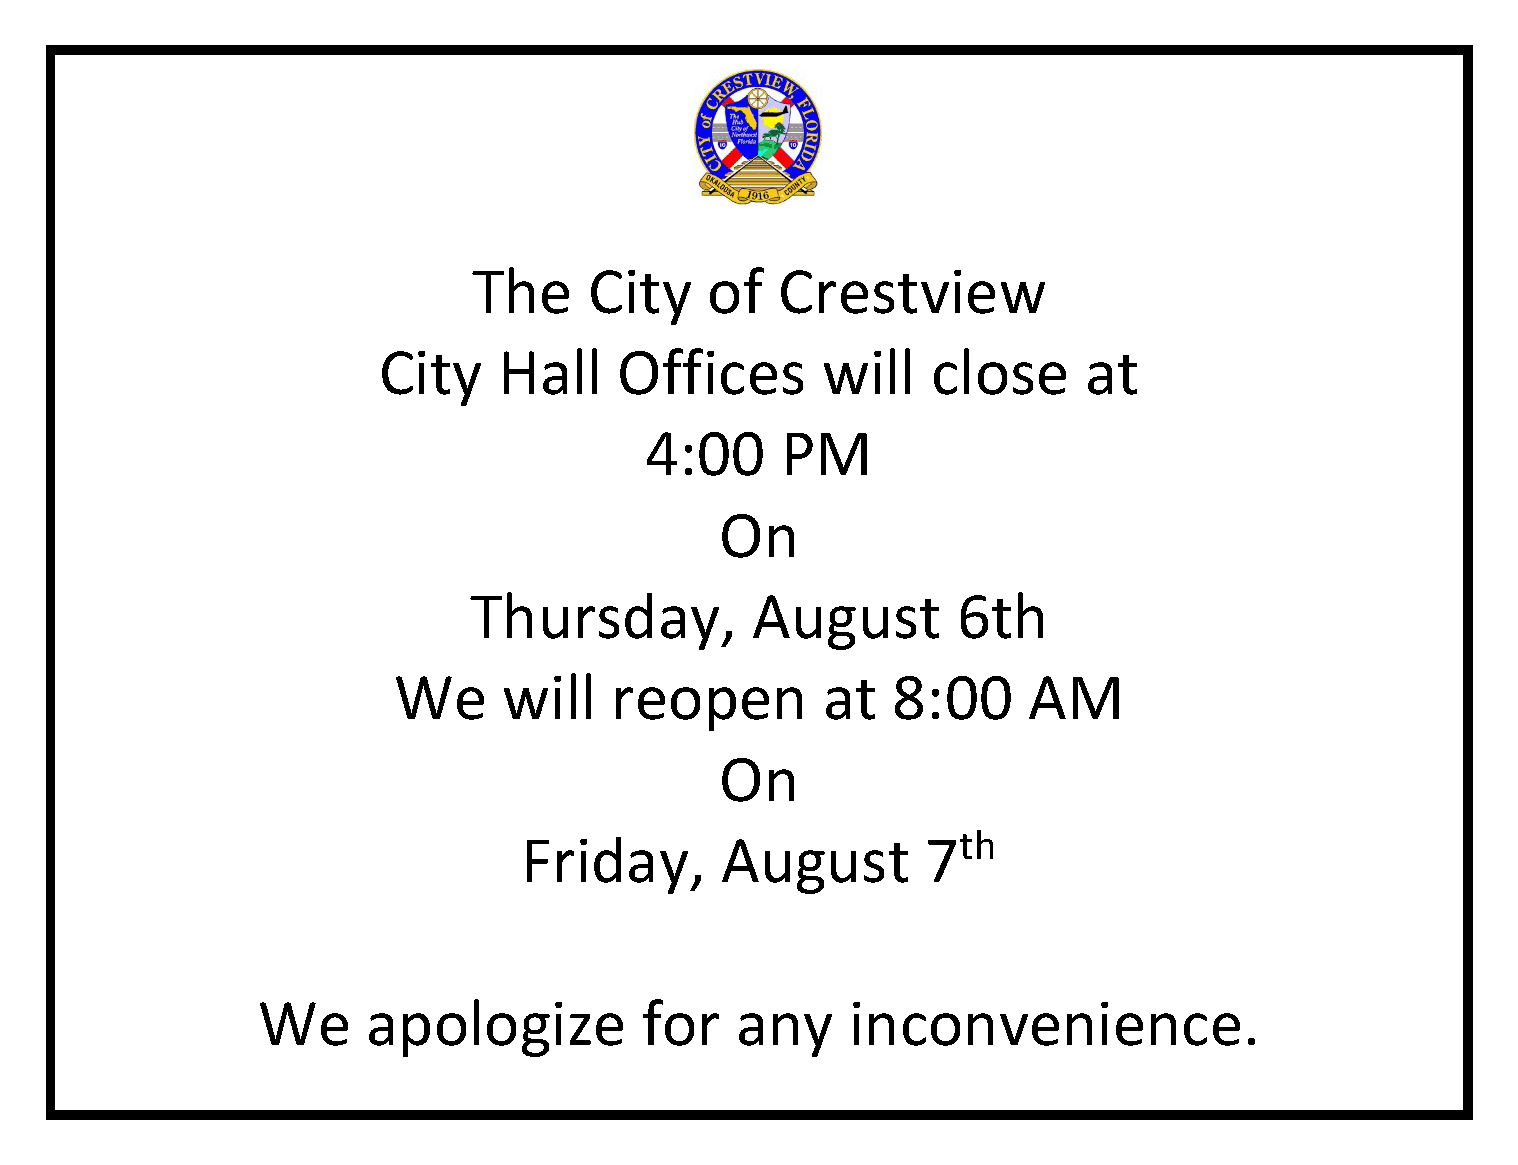 City Hall closed at 4:00 PM on 8/6/2020